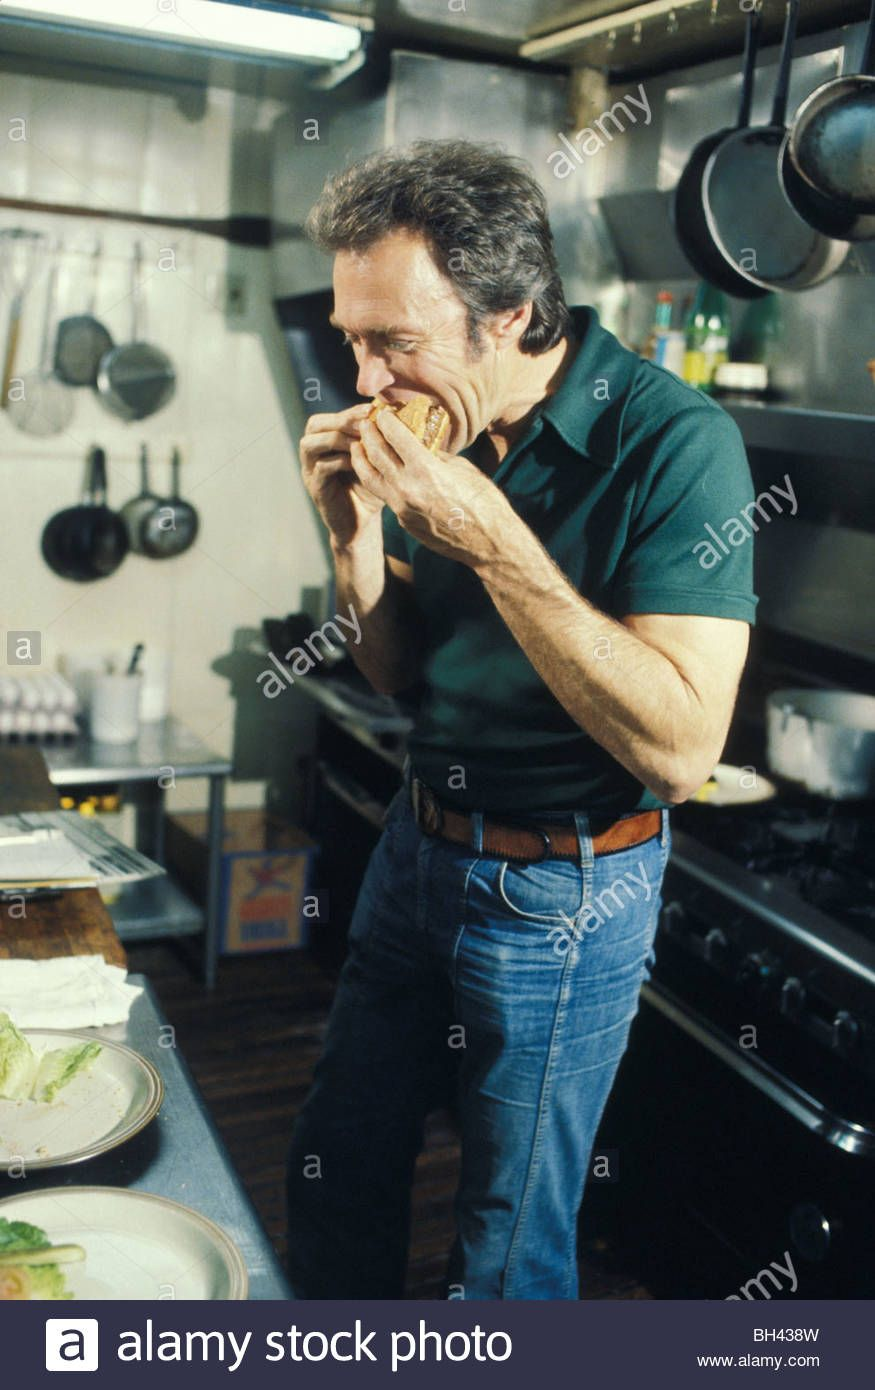 Movie Star Actor Clint Eastwood In Kitchen Of His Former